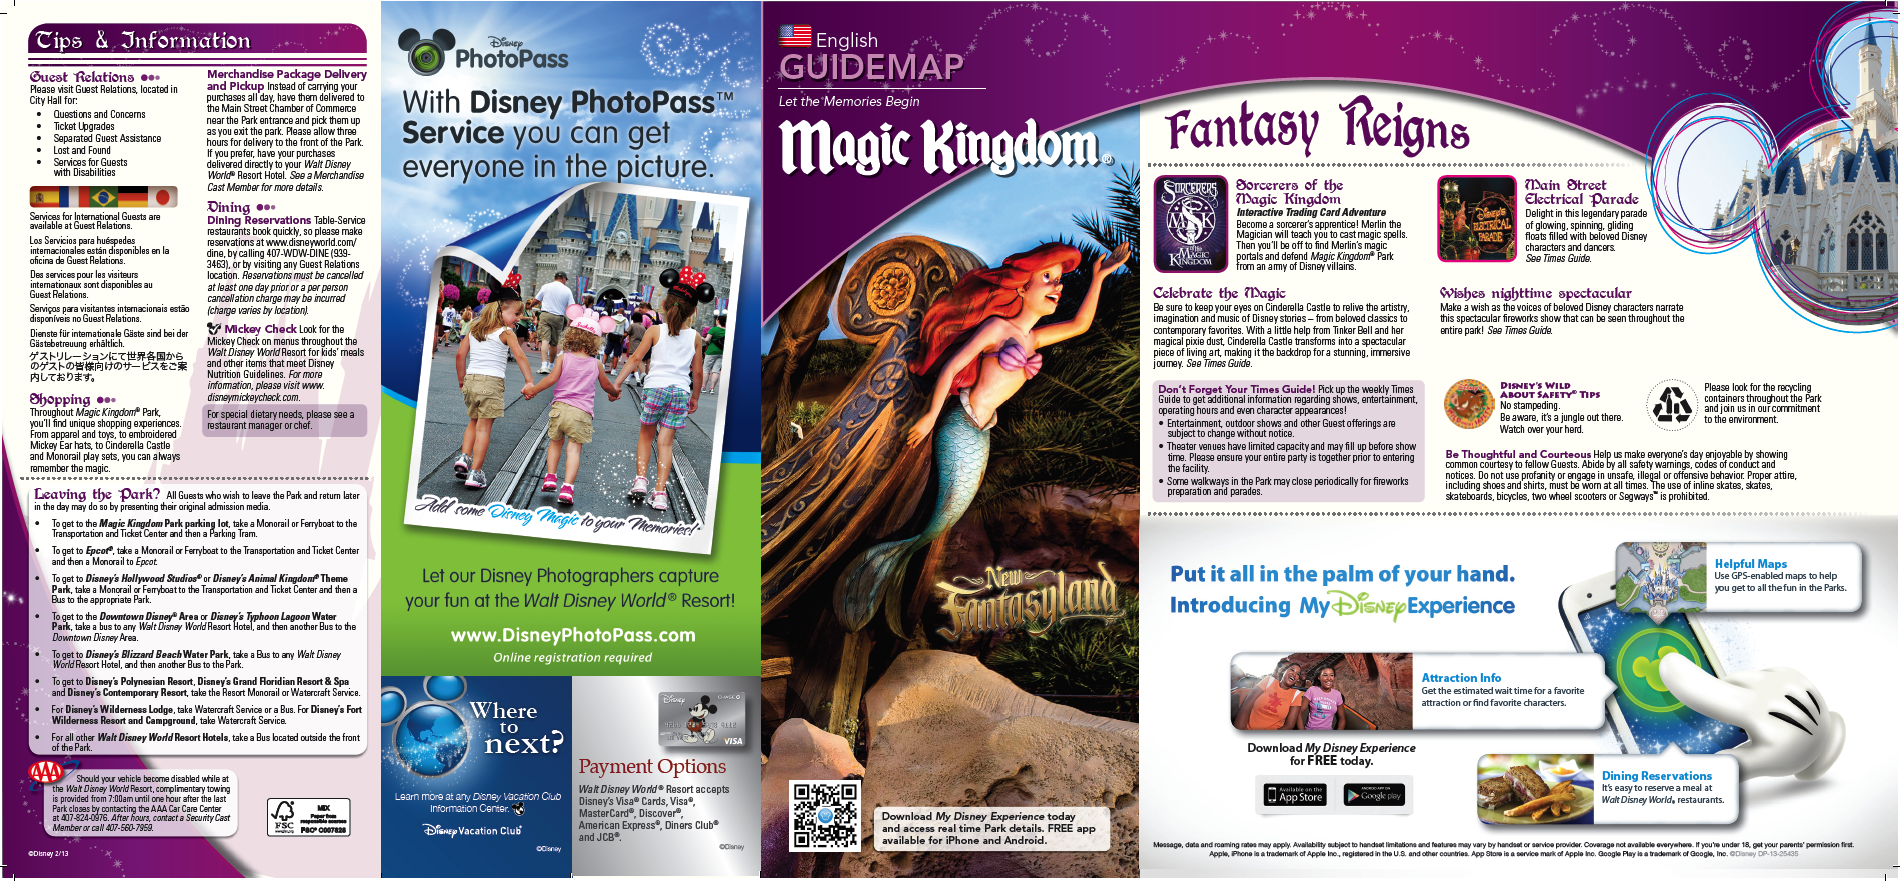 Disney World Florida Map.Check Out The New Disney World Park Maps Disney Tips Best Of